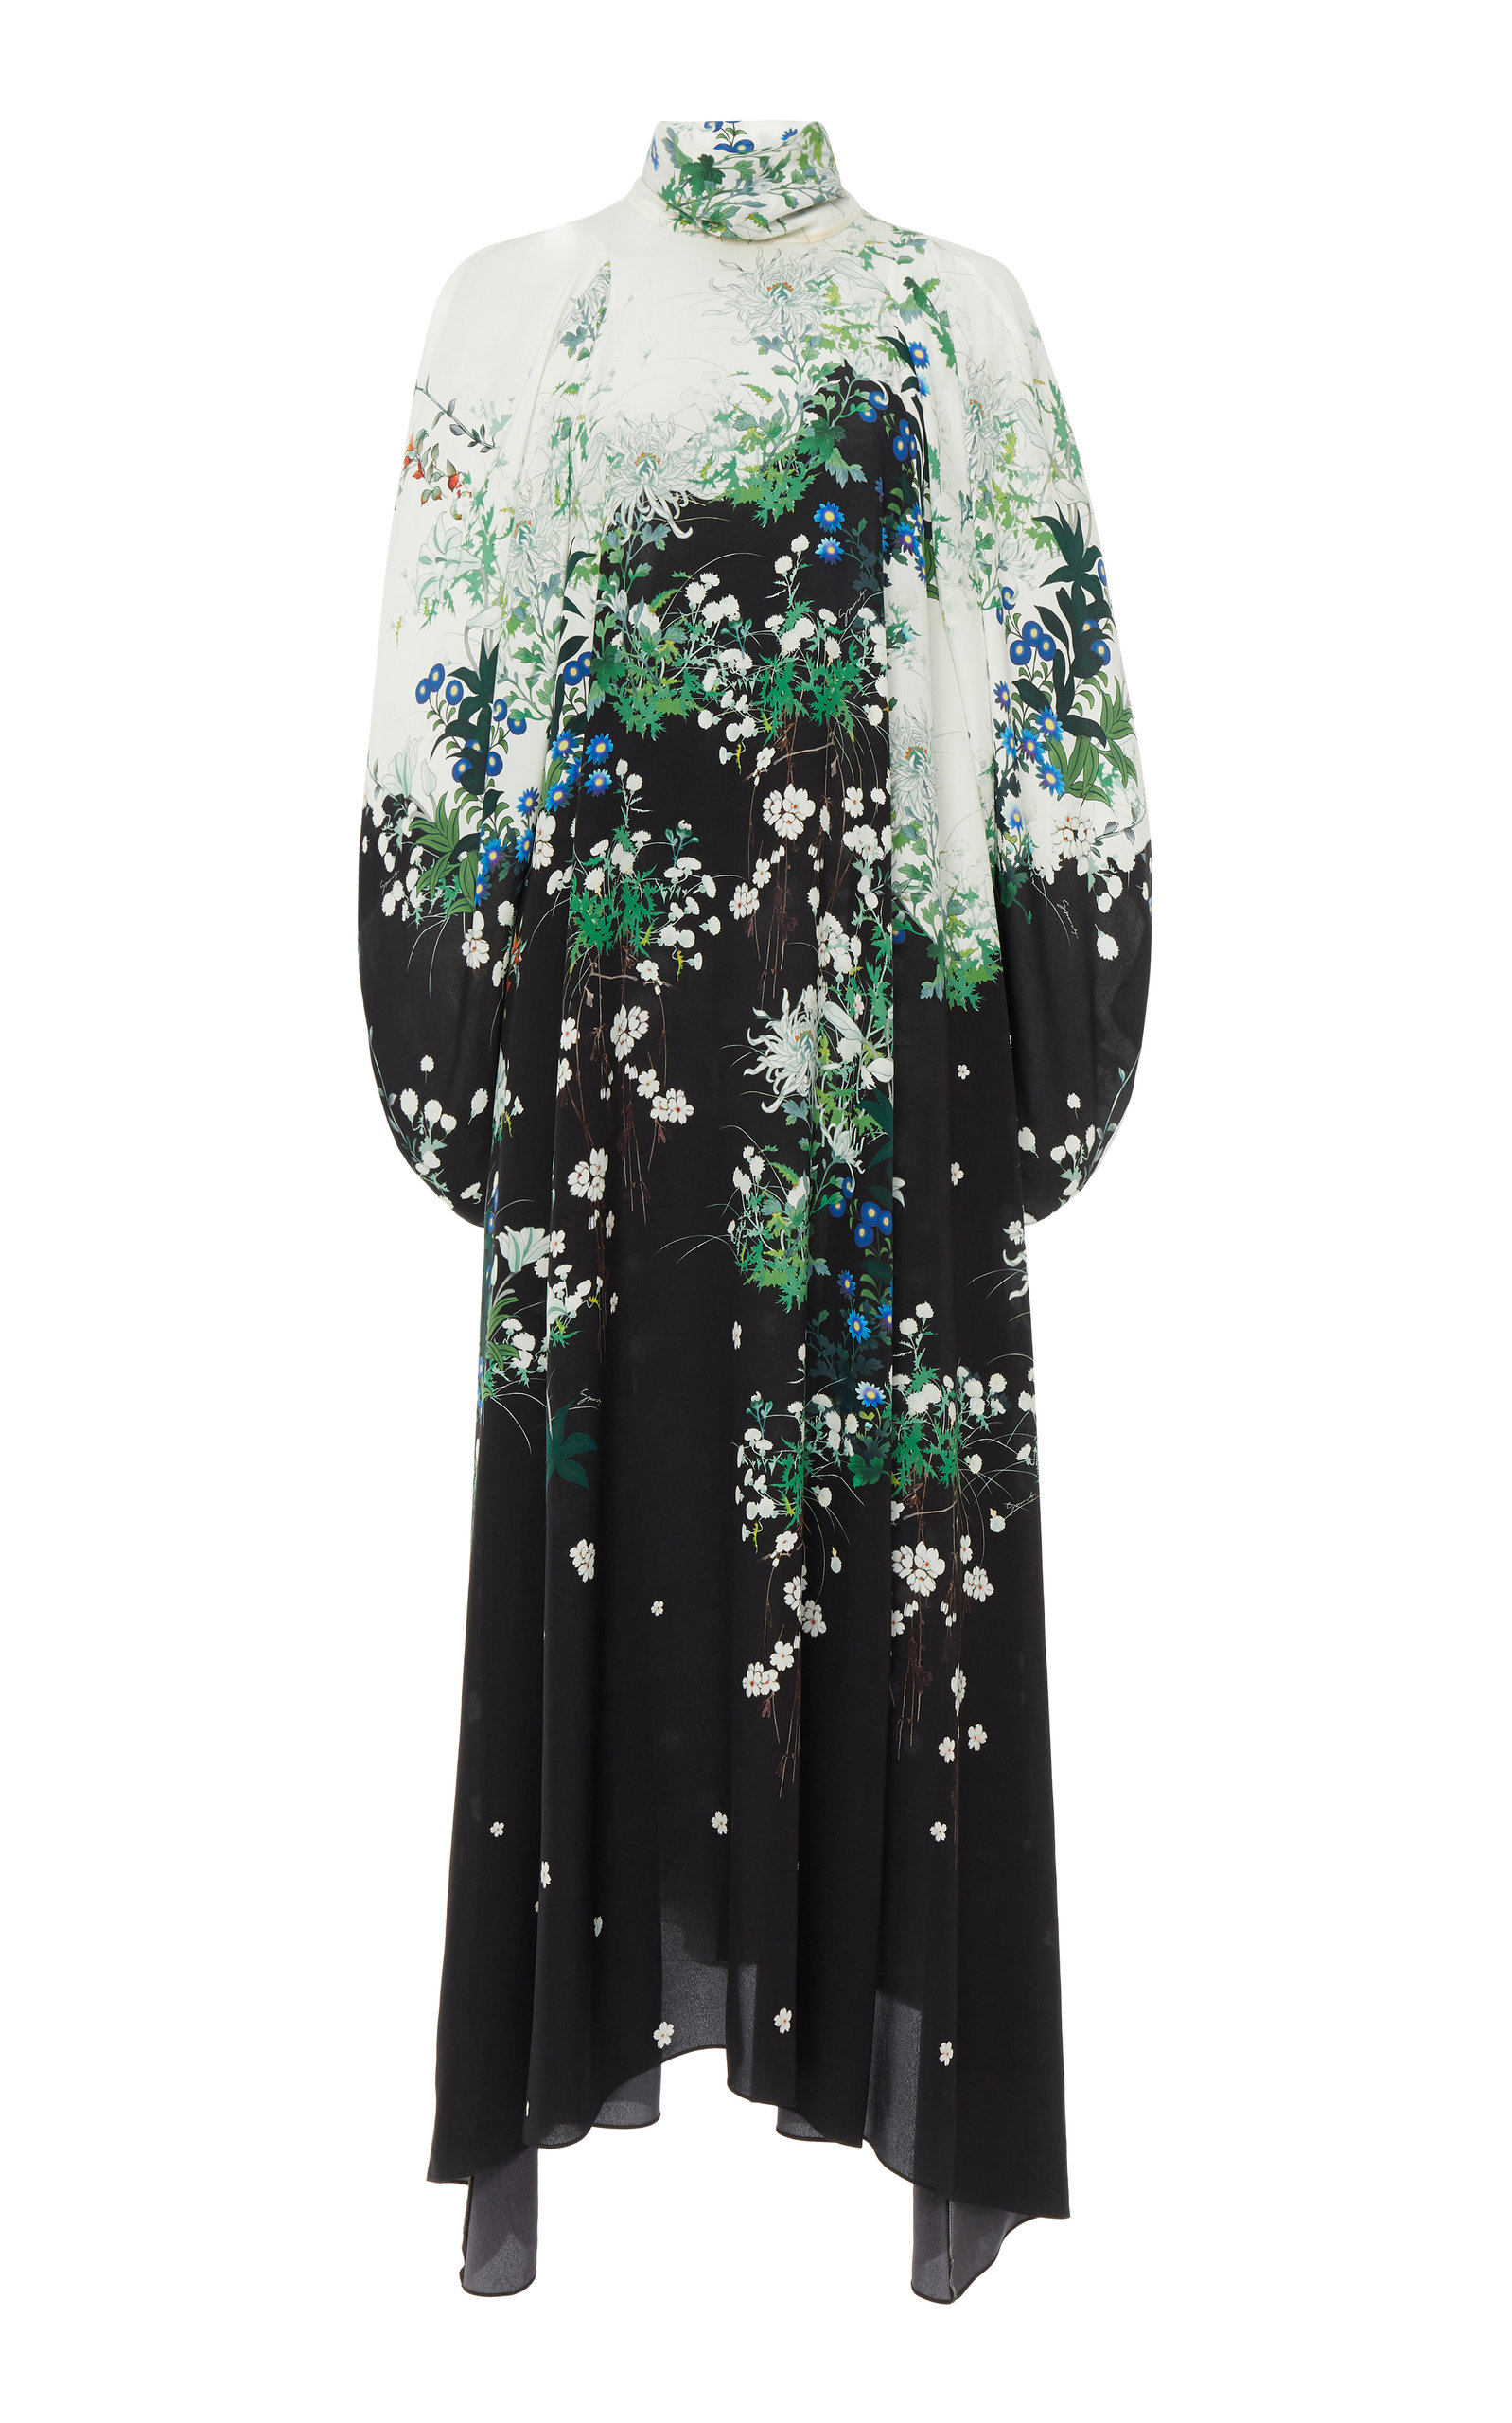 Buy Givenchy Floral-Print Silk-Chiffon Midi Dress online, shop Givenchy at the best price